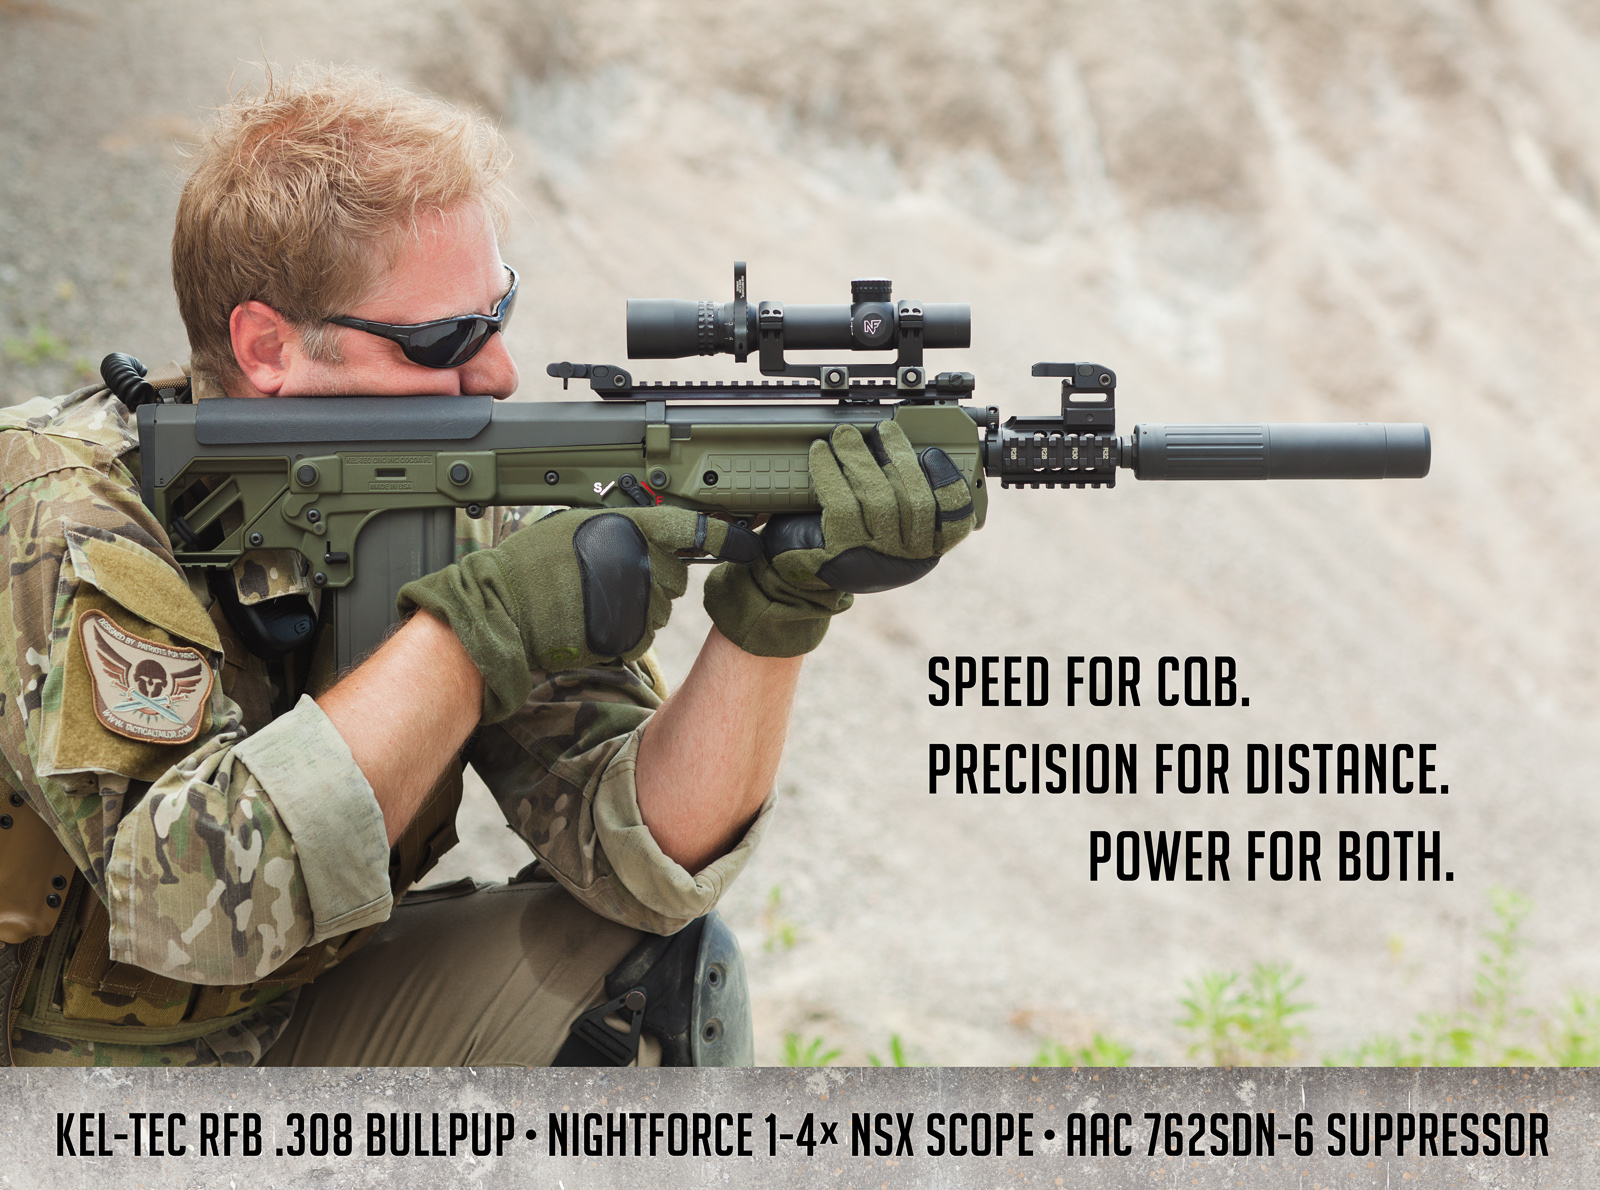 RFB Pictures - Show & Tell (NO DISCUSSION) - Page 16 ... M14 Bullpup